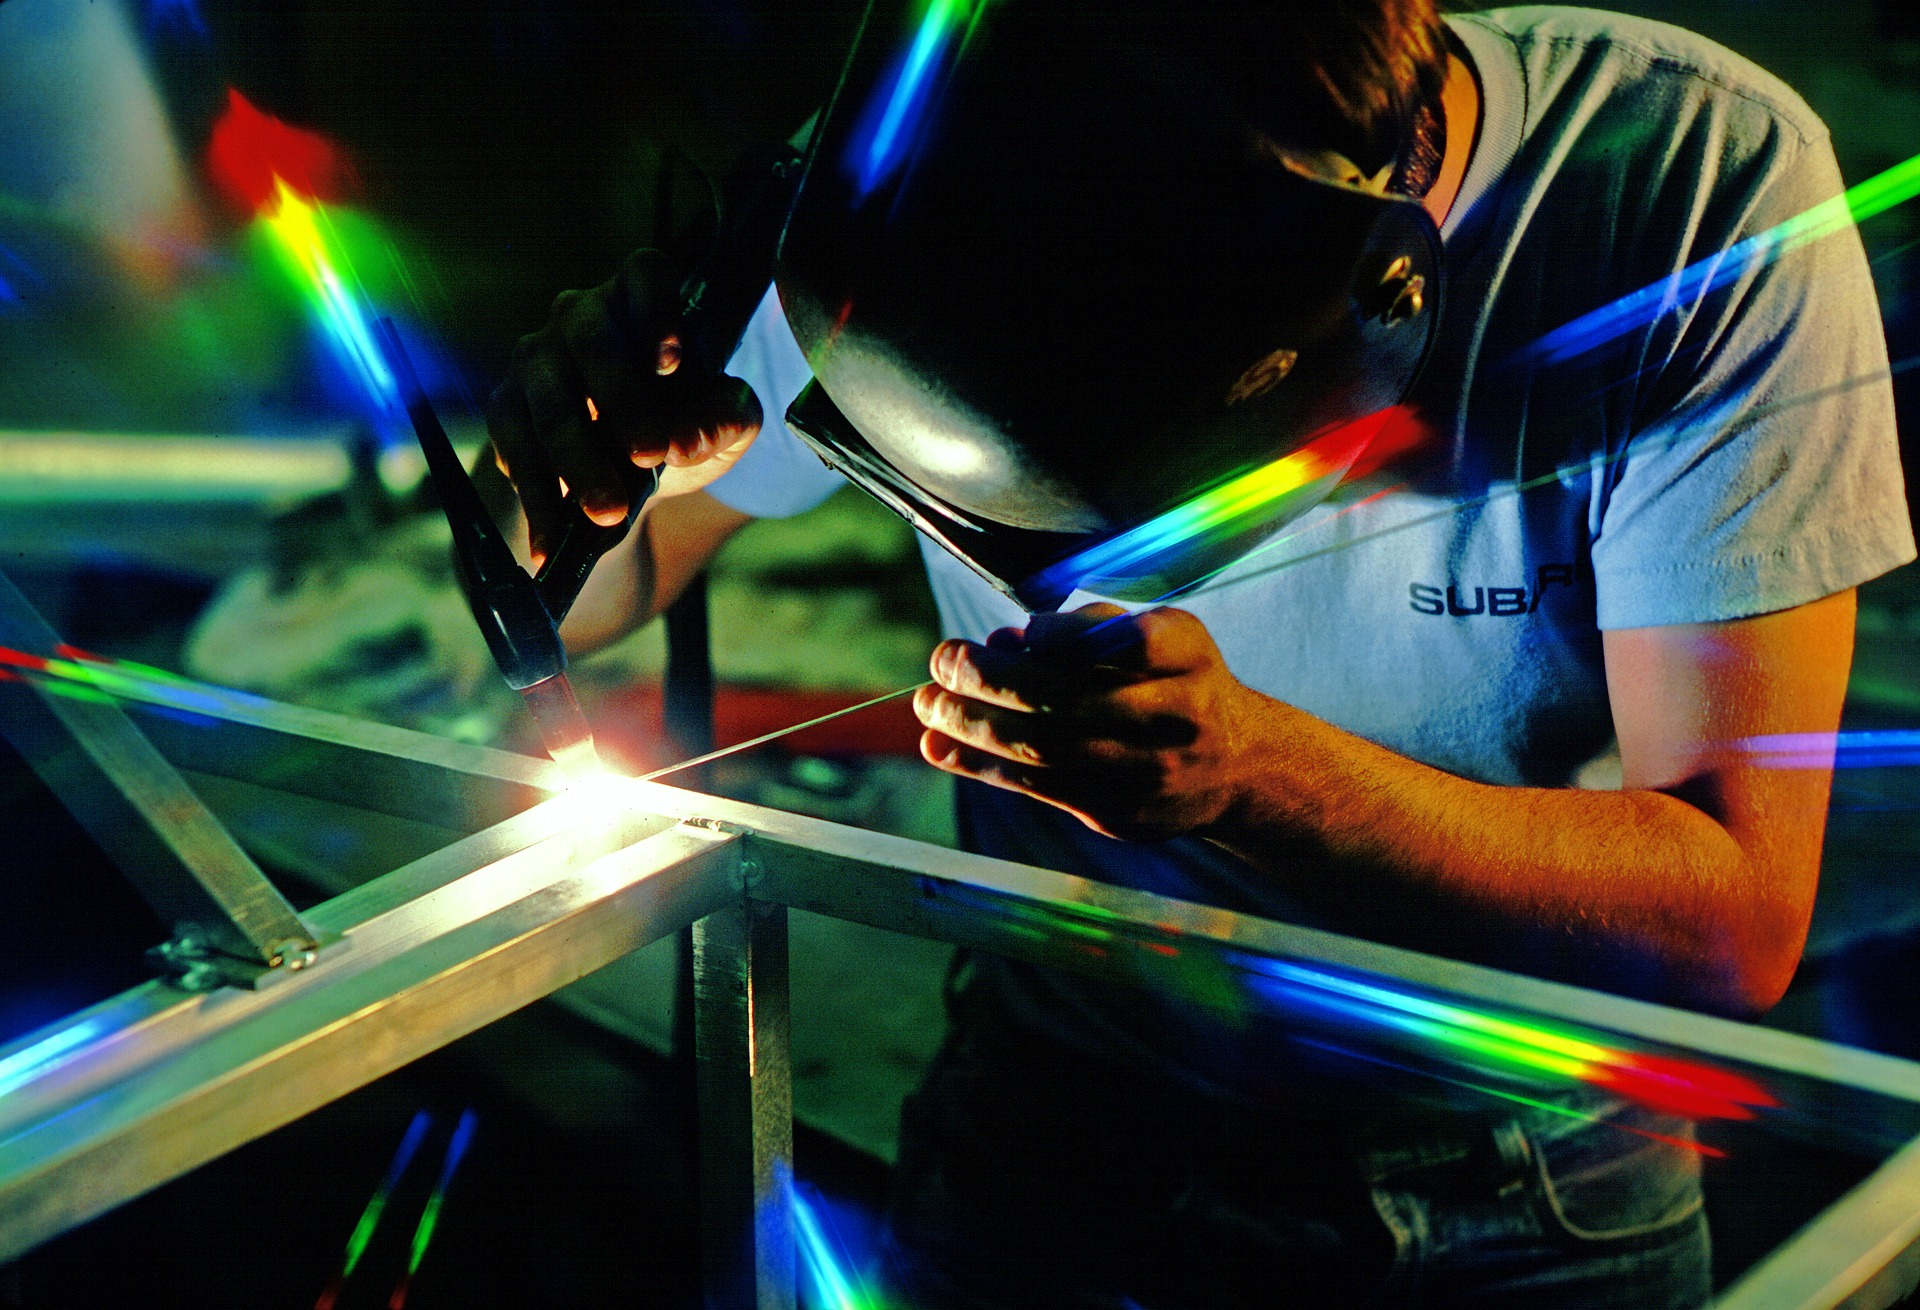 Welder at manufacturing facility   Image by Mike Flynn from Pixabay